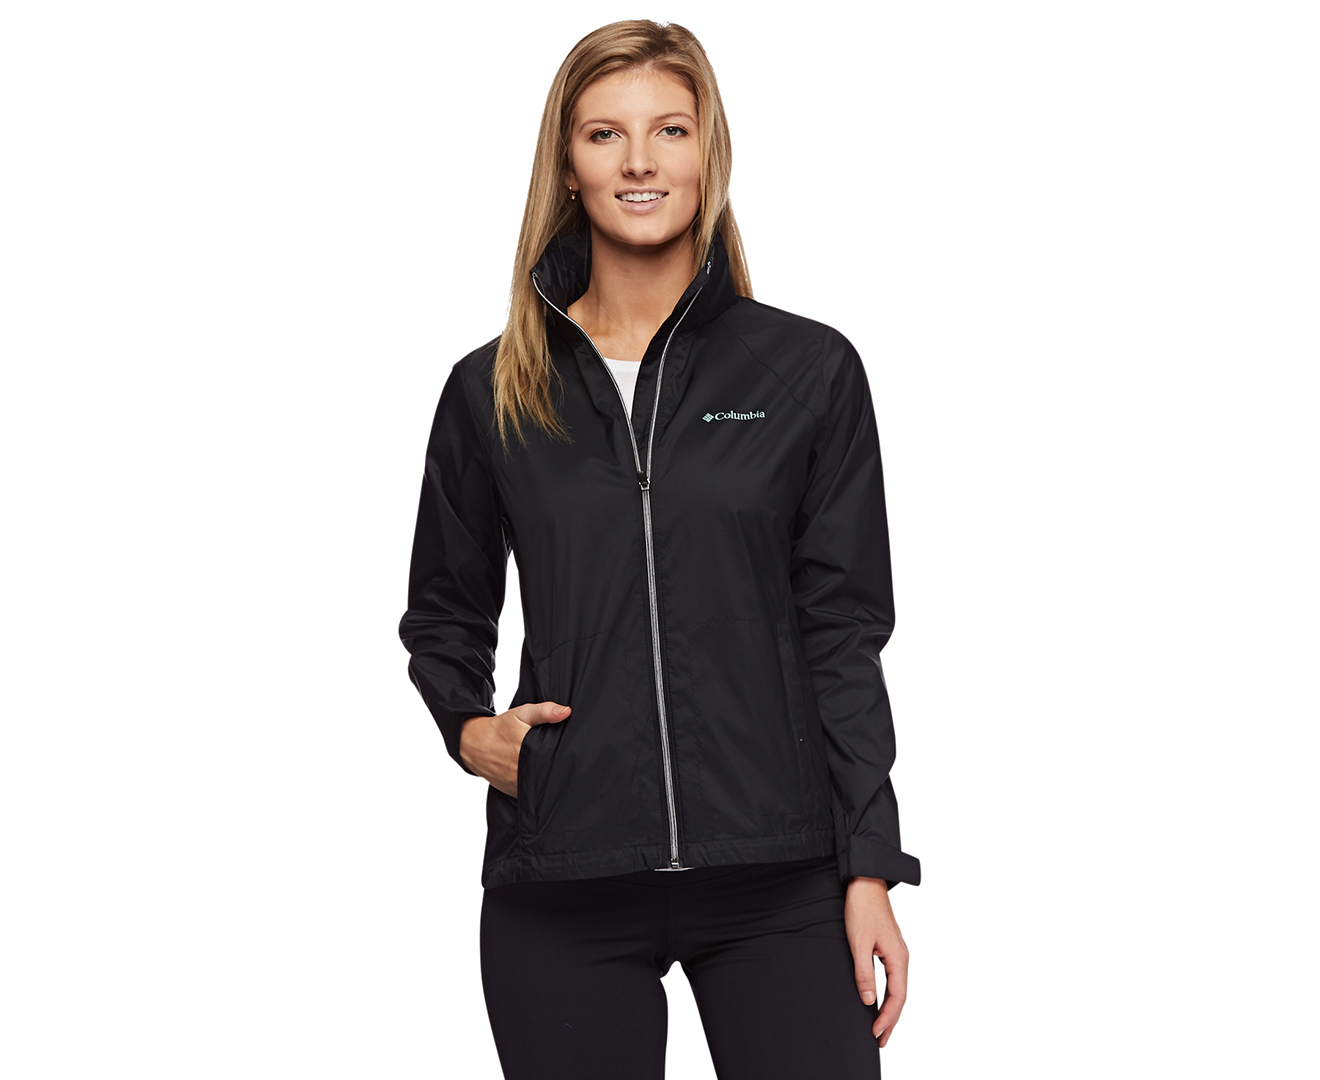 aa1aaf996b9 Columbia Women s Switchback III Jacket - Black